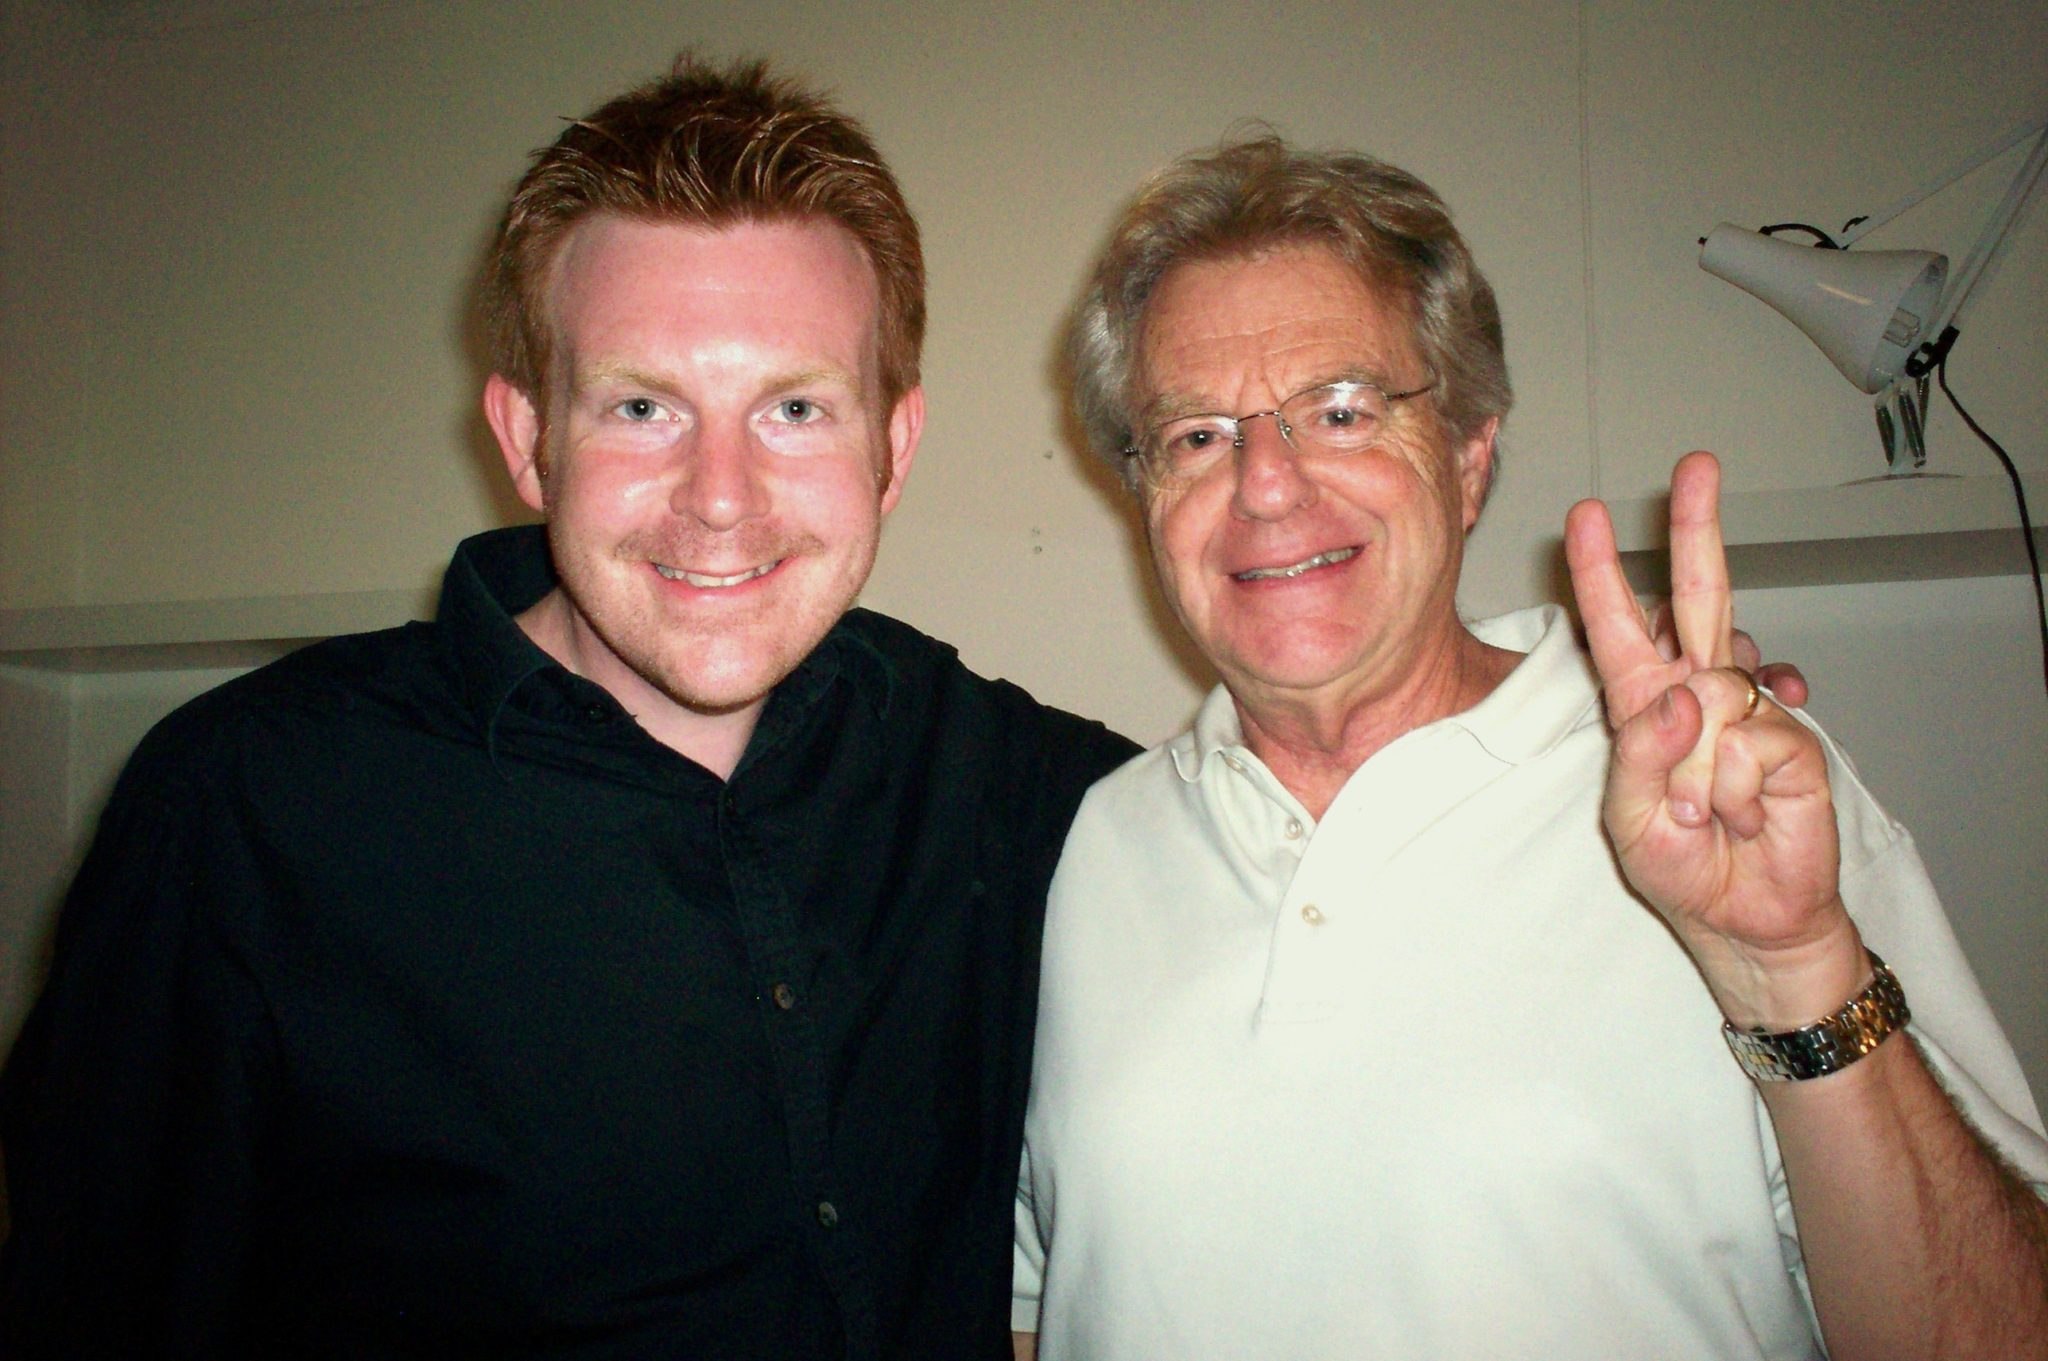 And finally….Alex Belfield met Jerry Springer for an exclusive interview and his life story. When Jerry came to the West End Belfield couldn't wait to […]